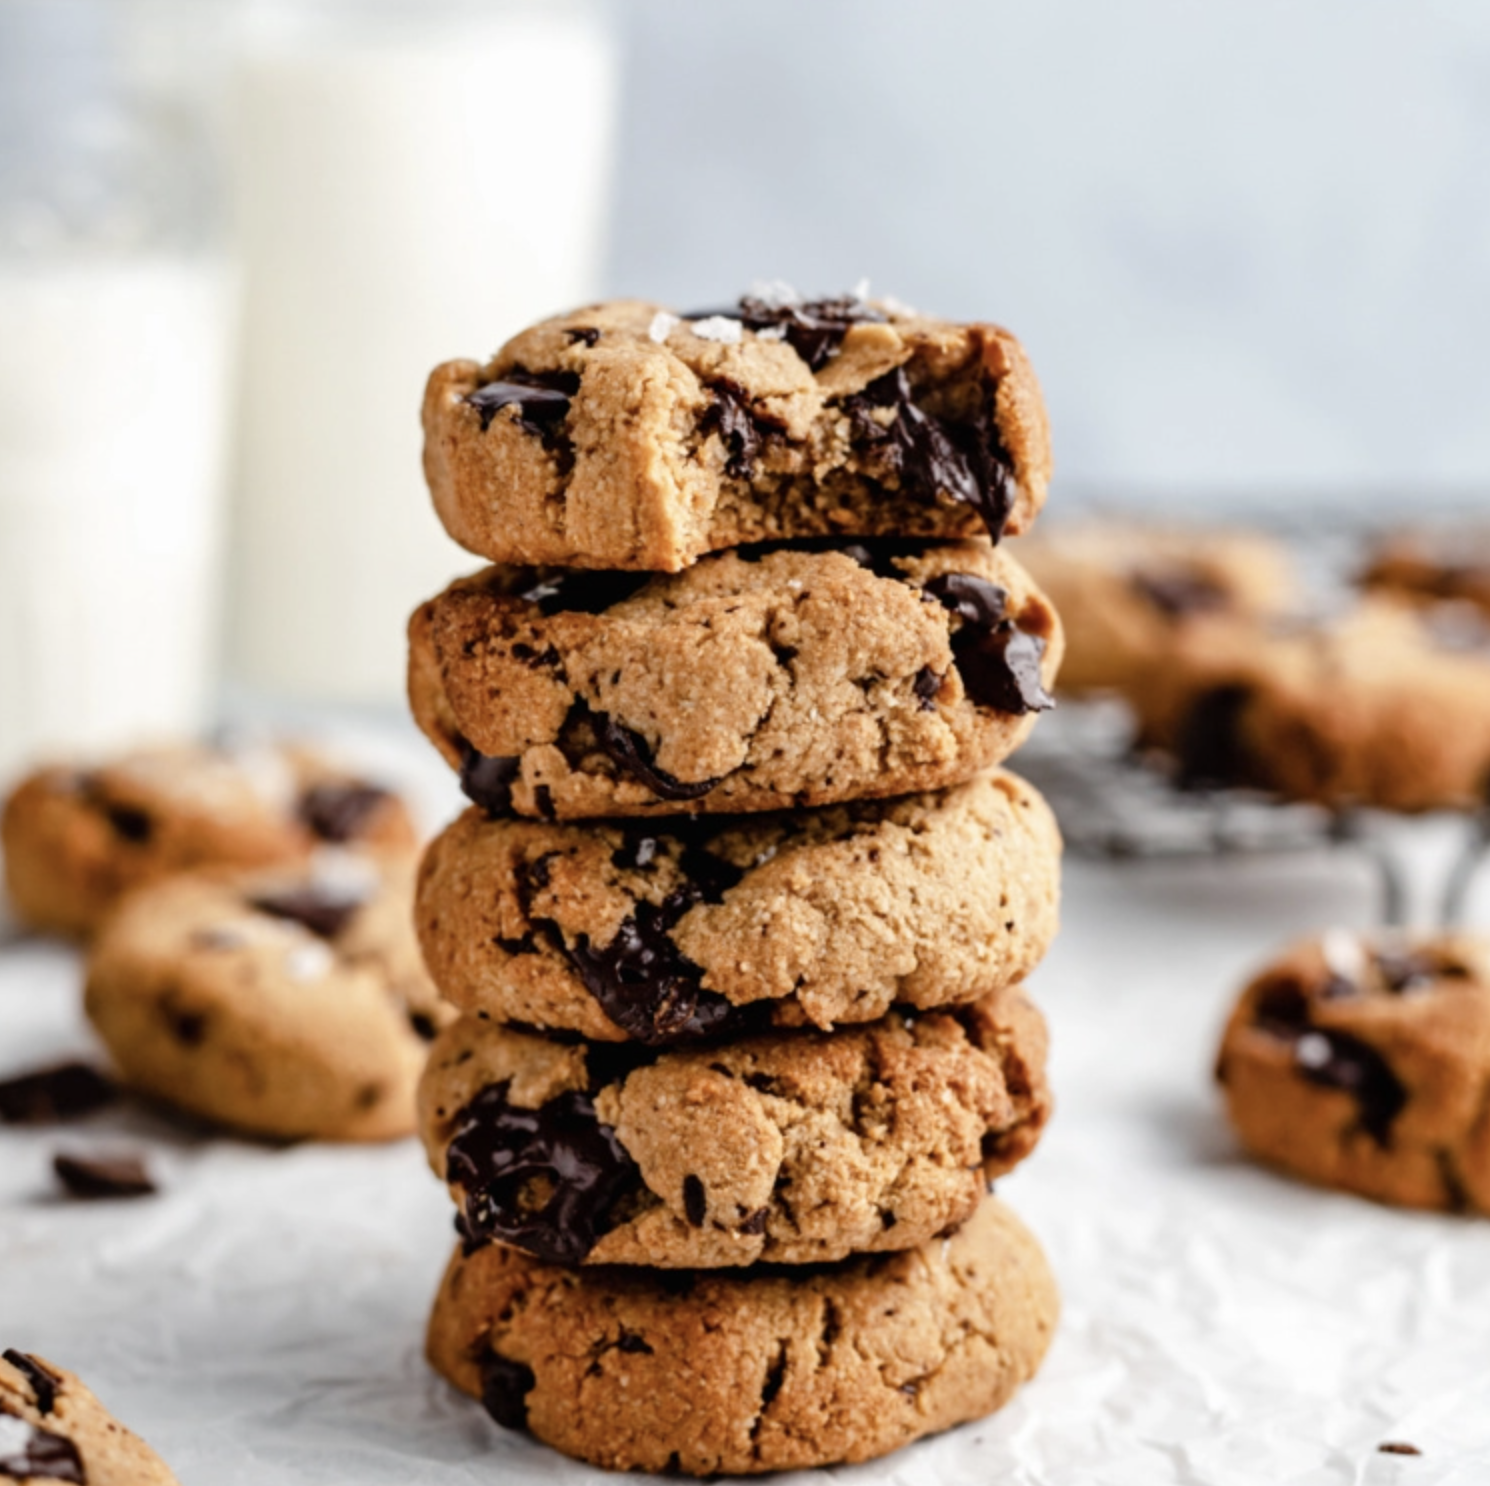 A stack of five small but nuggety chocolate chip cookies, topped with a sprinkle of salt